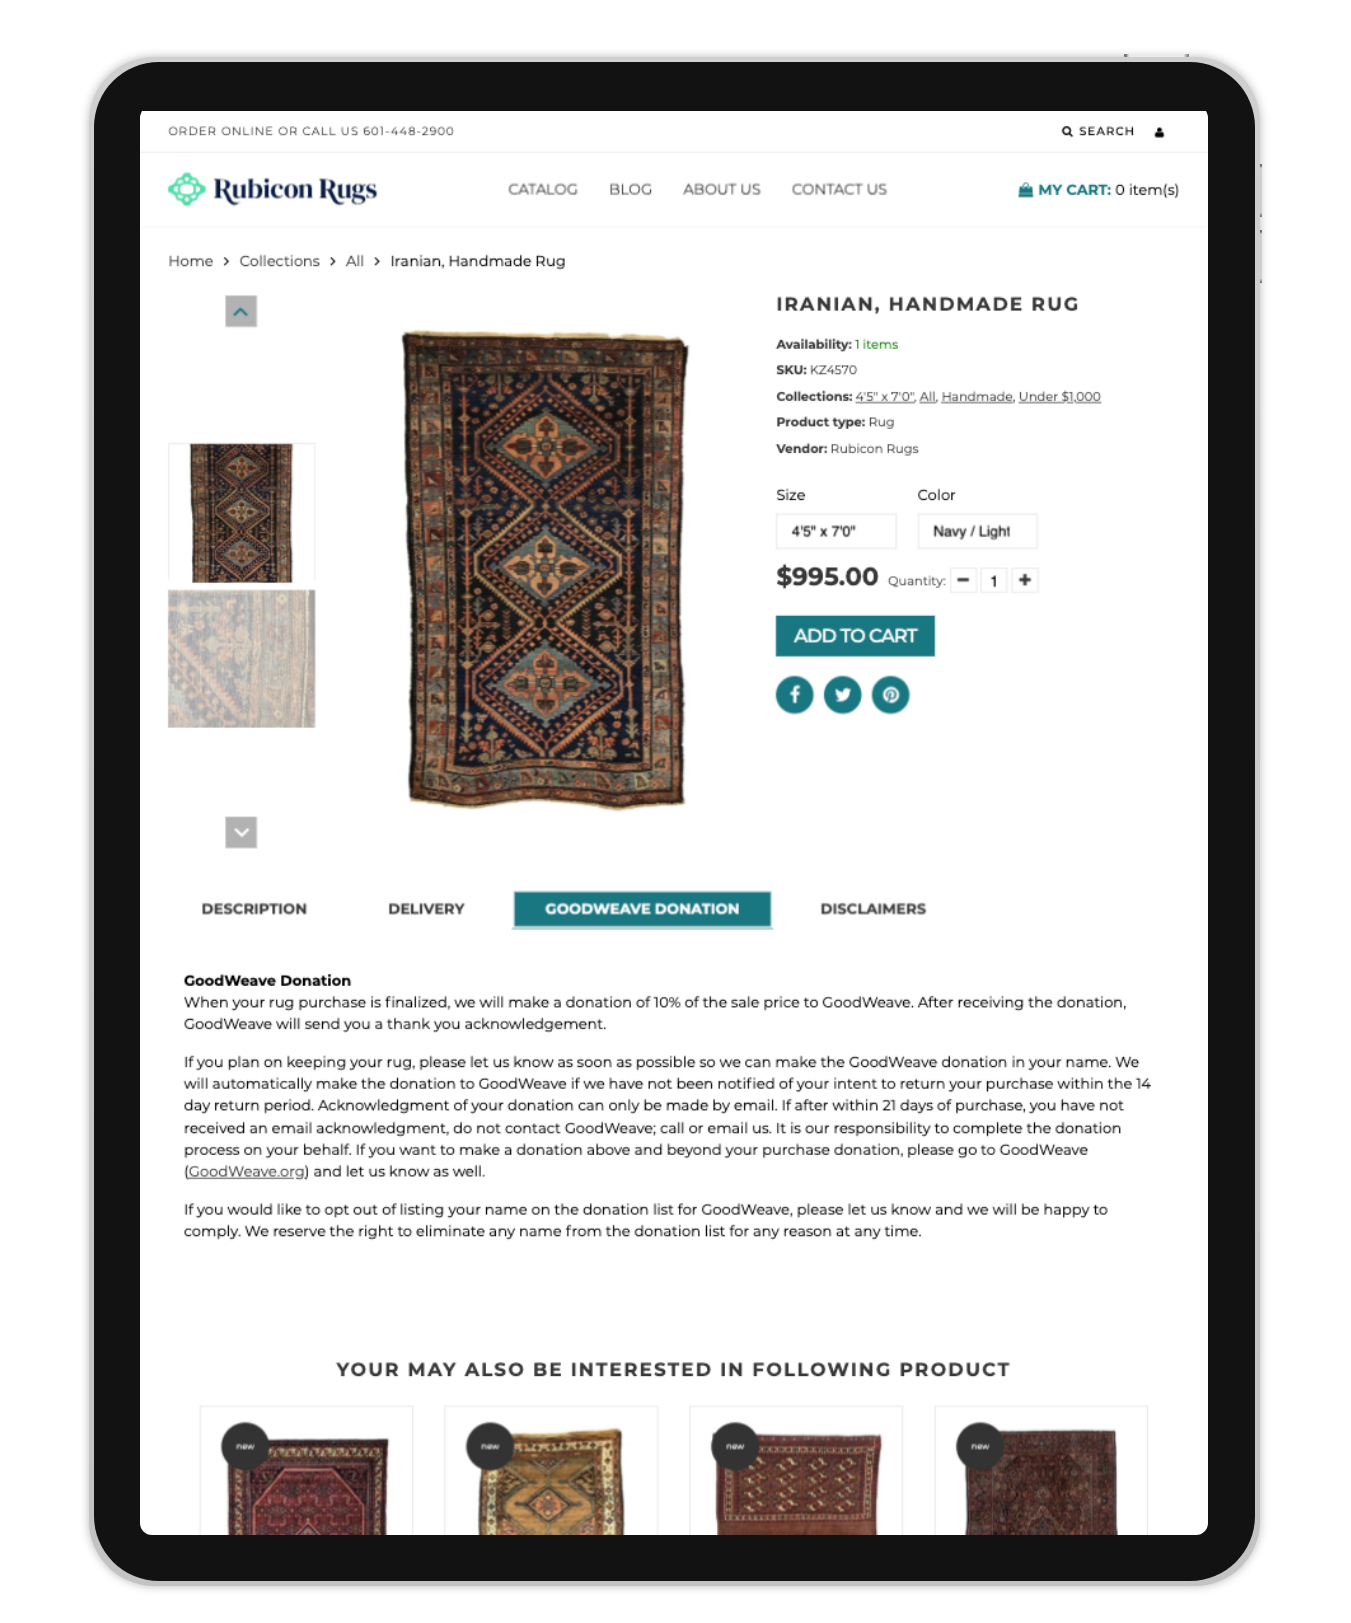 Rubicon Rugs - Development of Custom Tabs for Product Information